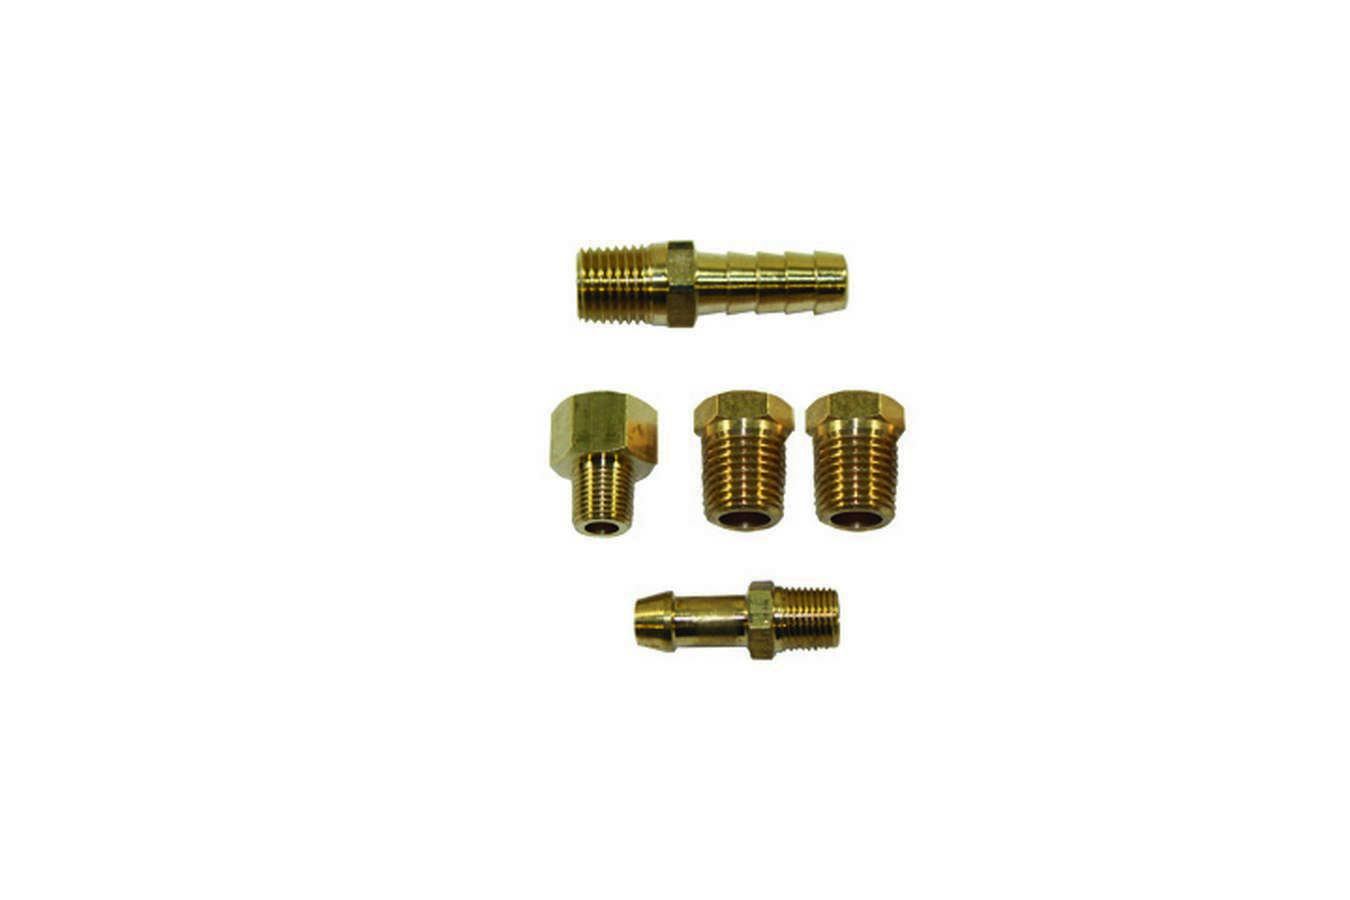 Specialty Chrome 3160 Fuel Pump Fitting Kit, Two 1/4 in NPT Male to 1/8 NPT Female, One 1/4 in NPT Male to 3/8 in Hose Barb, 1/8 in NPT Male to 1/4 in Hose Barb, 1/8 in NPT Male to 1/2-20 in IF Female, Brass, Natural, Universal, Kit